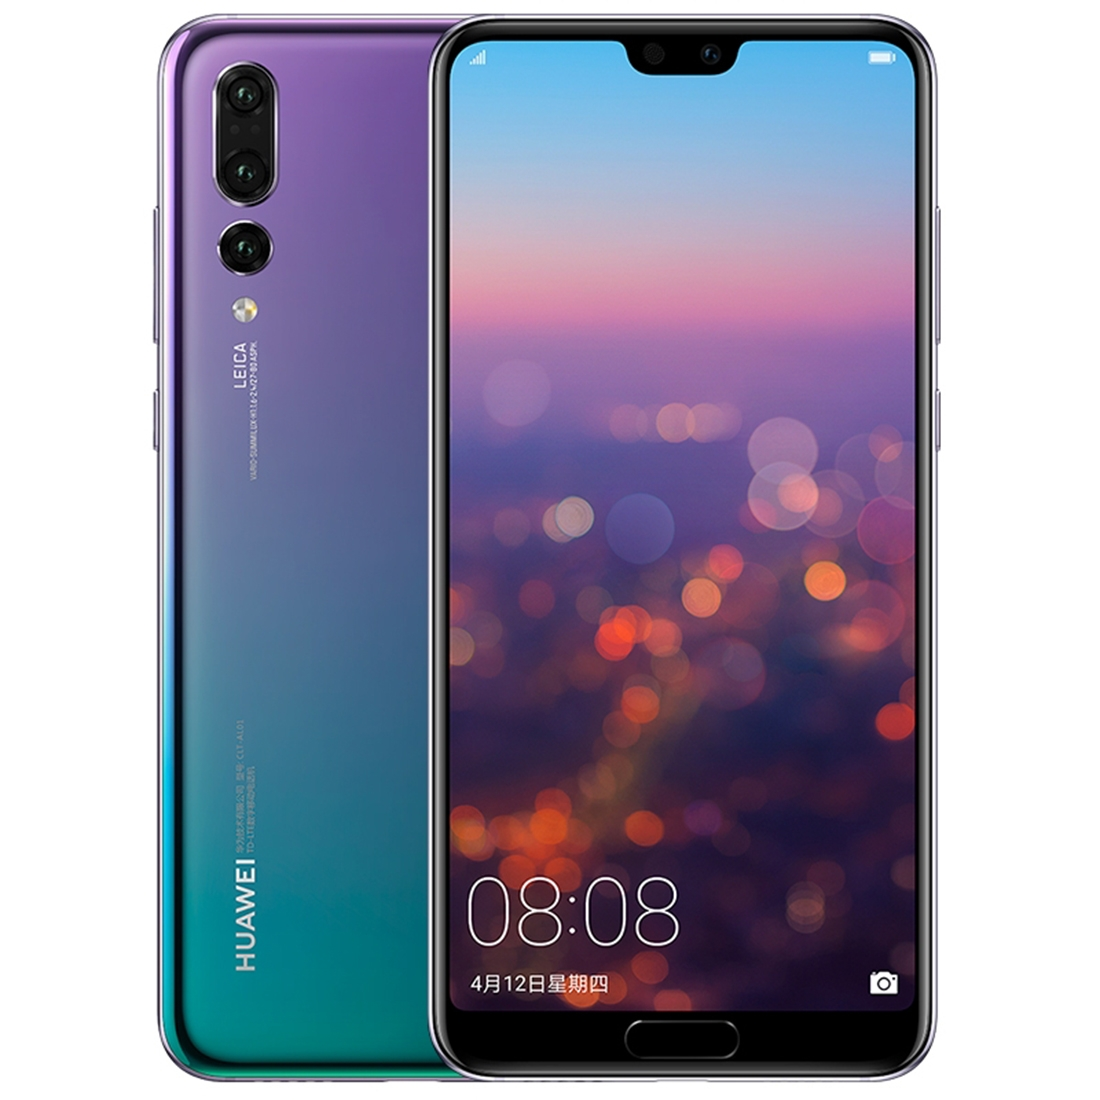 Huawei P20 Pro Clt-al00 6gb+128gb Triple Back Cameras Fingerprint  Identification - Buy Huawei,Huawei P20,Huawei Phones Price Product on  Alibaba com